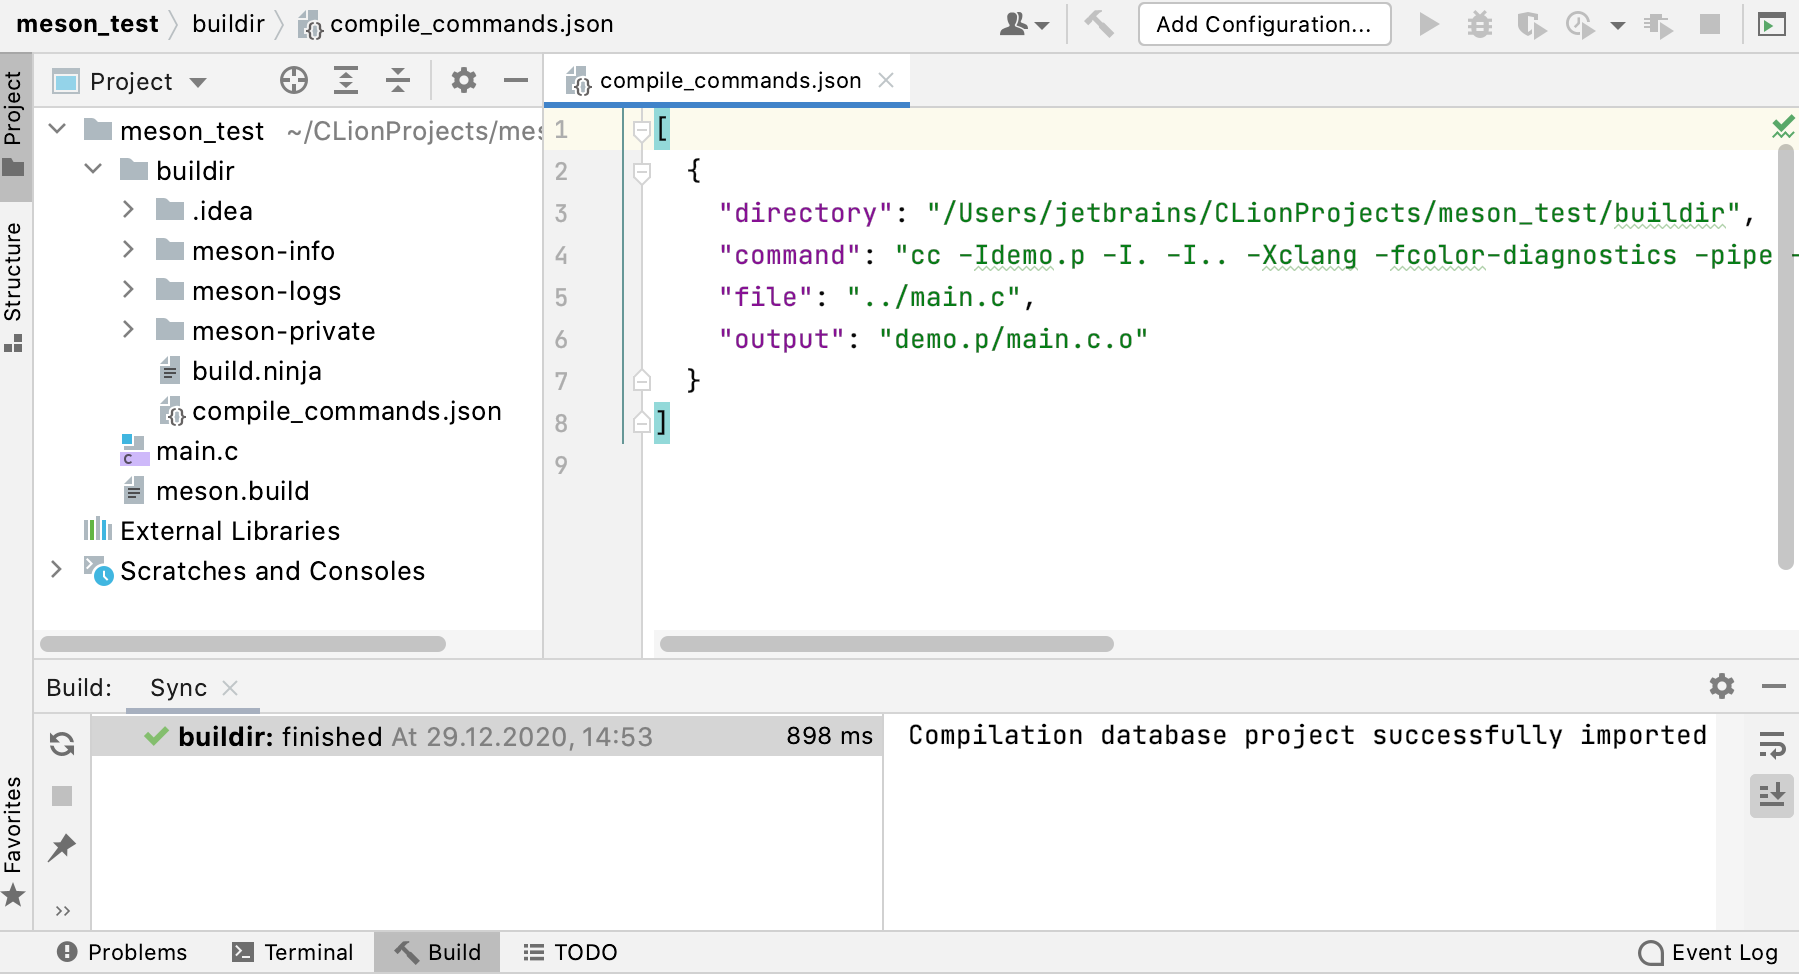 Loading a Meson project via compilation database